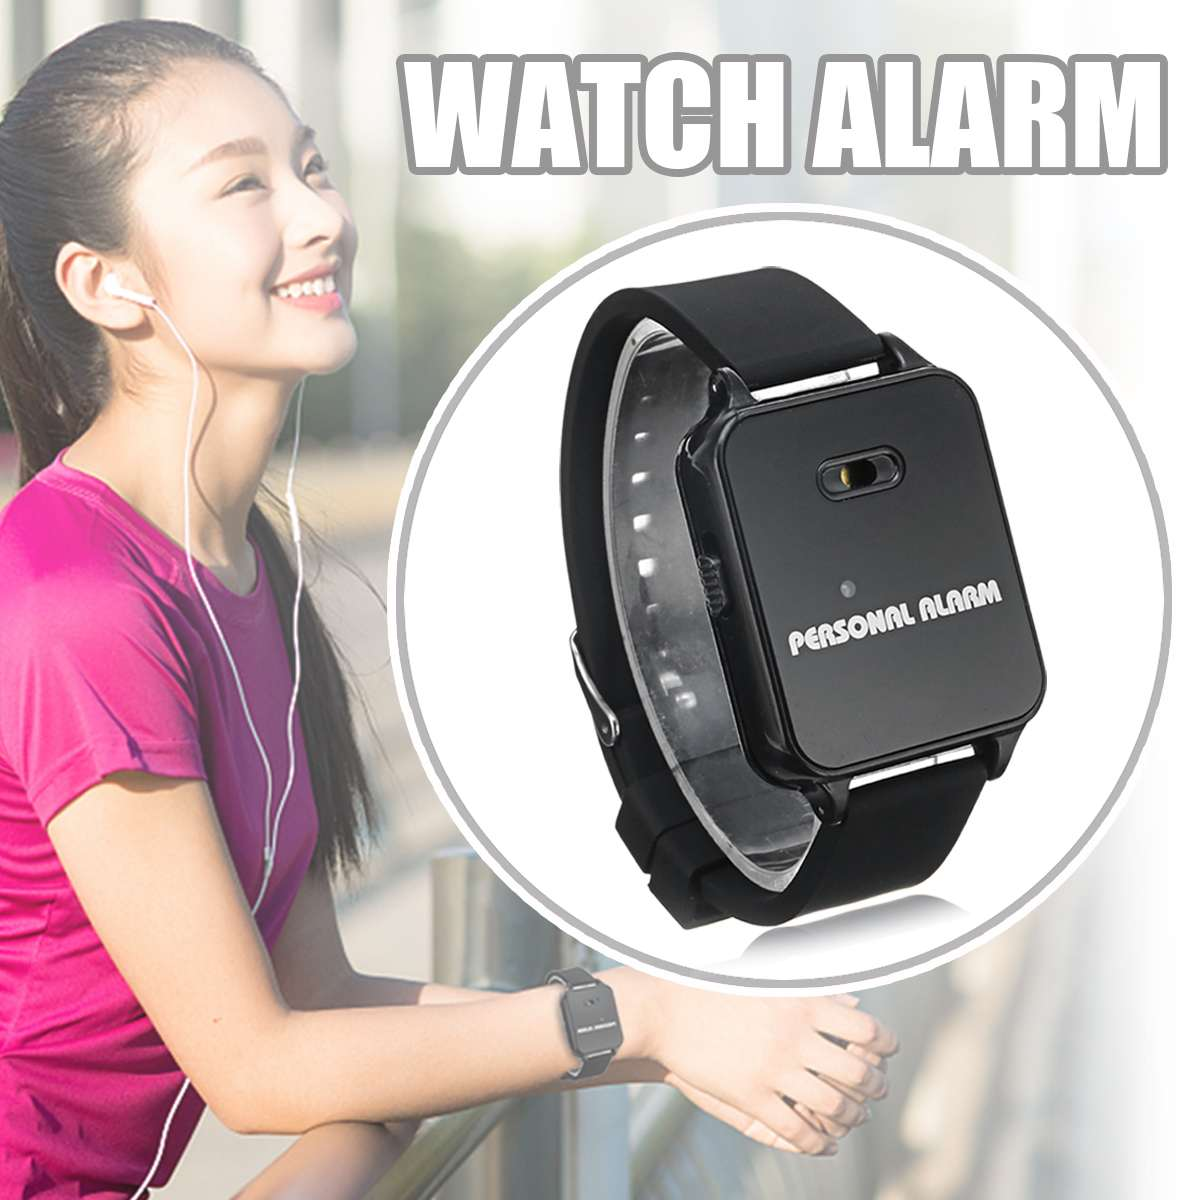 120DB Self Security Protection Personal Alarm Watch Running Rescuer Outdoor Women Anti-wolf Kids Elder Anti-lost Device Alarm